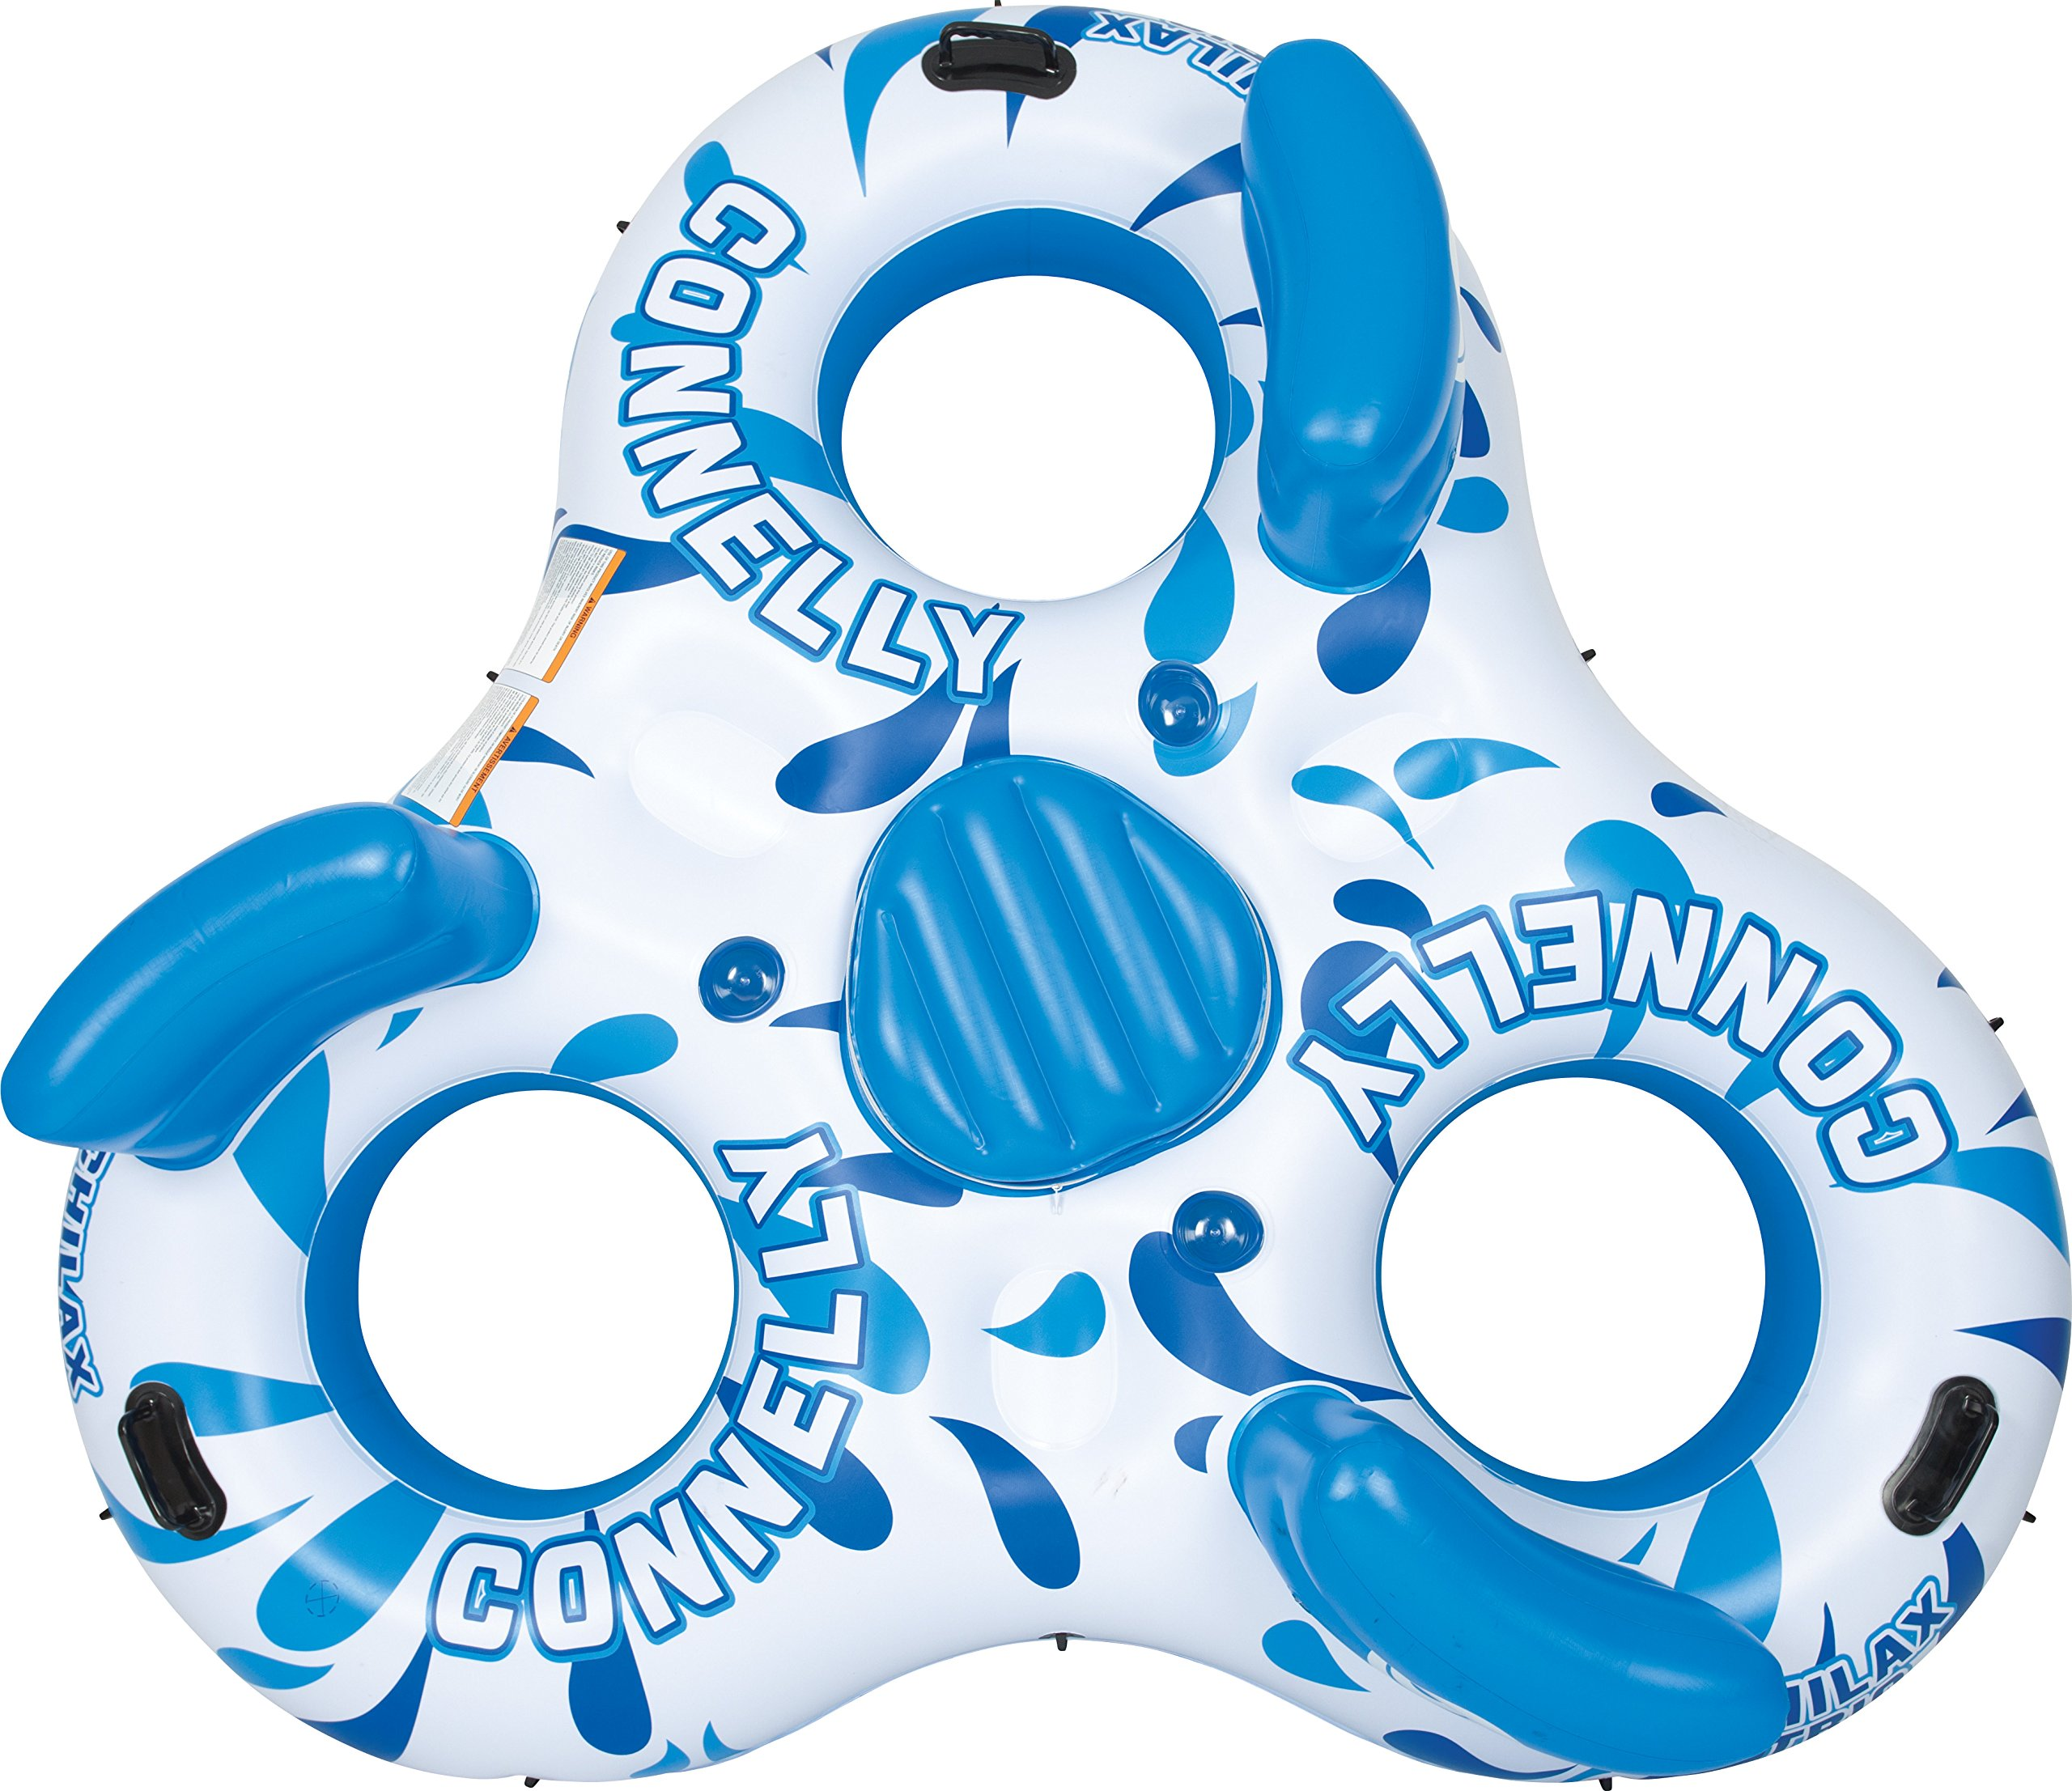 CWB Connelly Chillax Trio Inflatable Raft by CWB (Image #1)